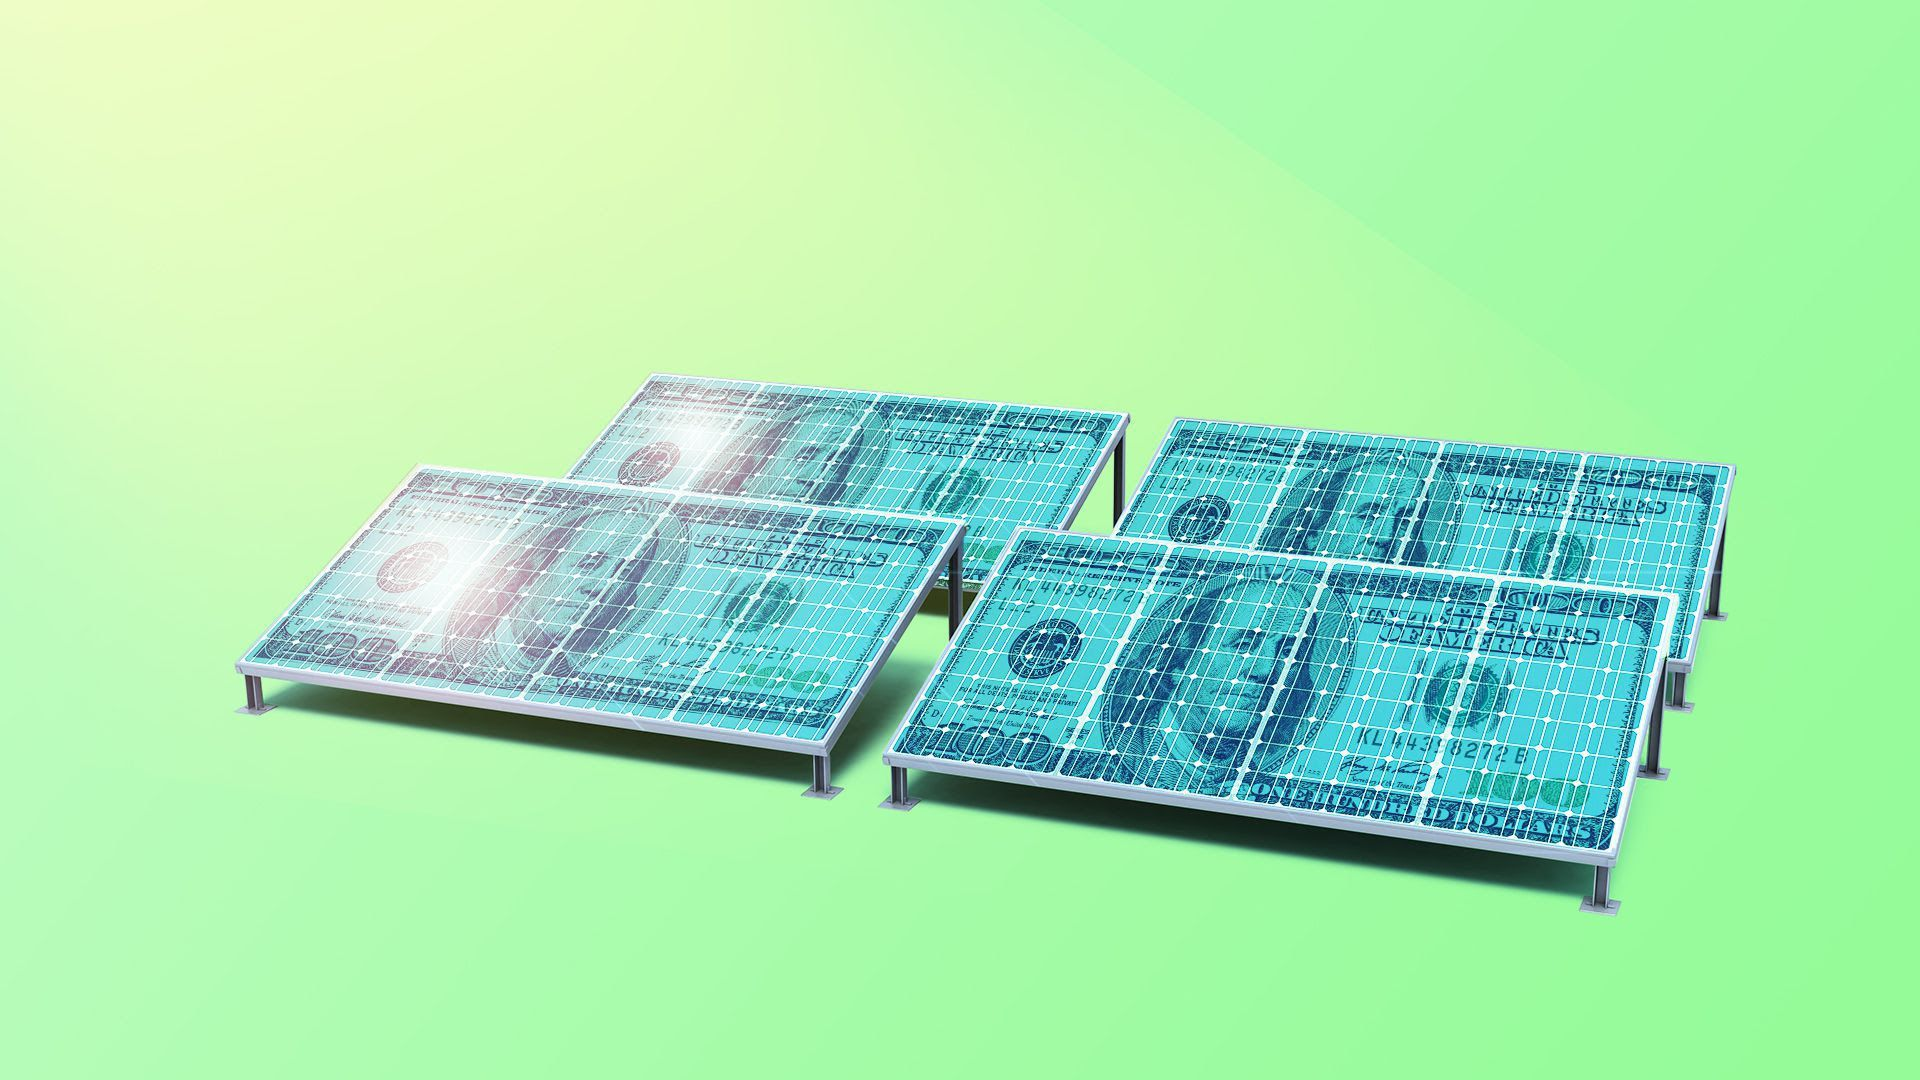 In this illustration, solar panels are designed to look like 100 dollar bills.